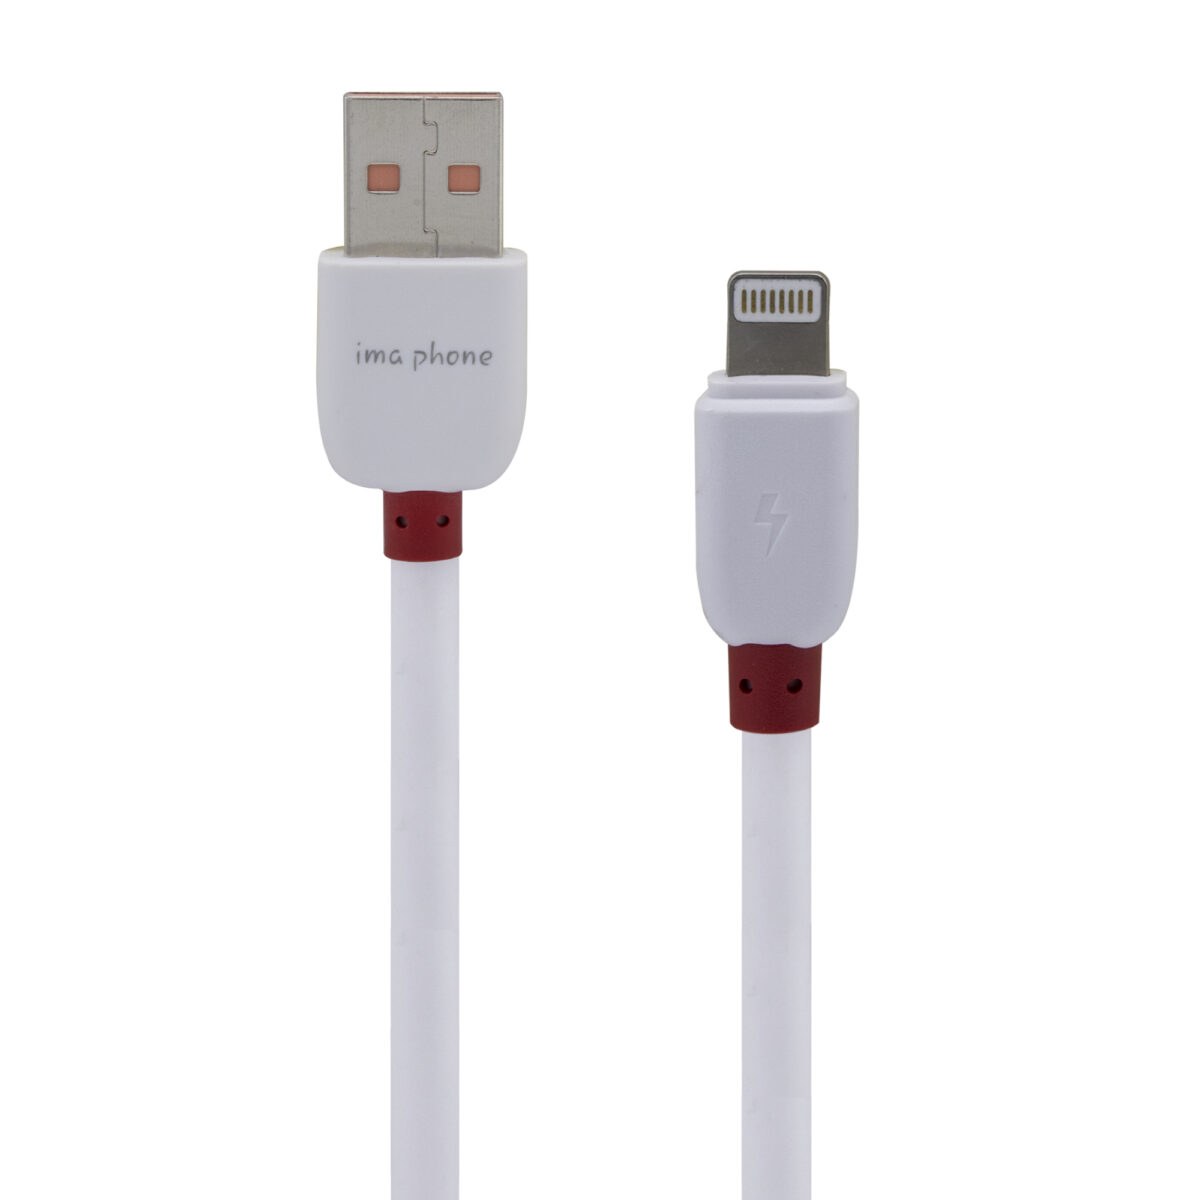 imaphone dk-398 adapter with micro cable